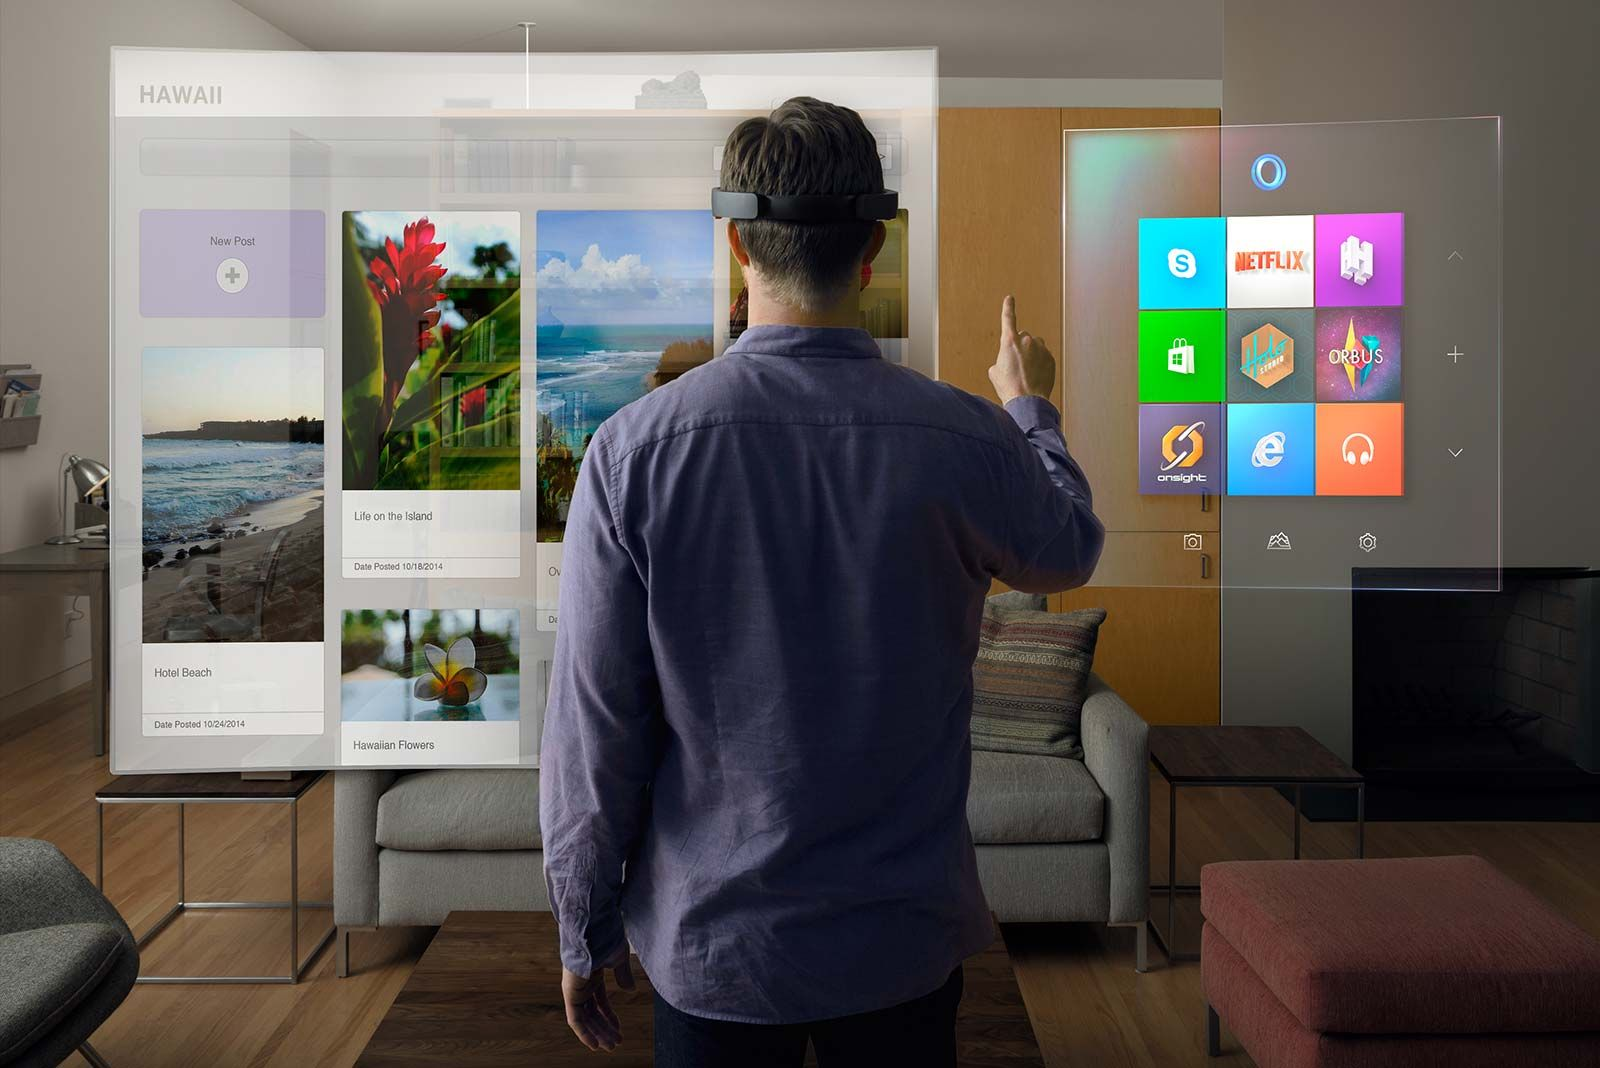 hololens augmented reality windows 10 new